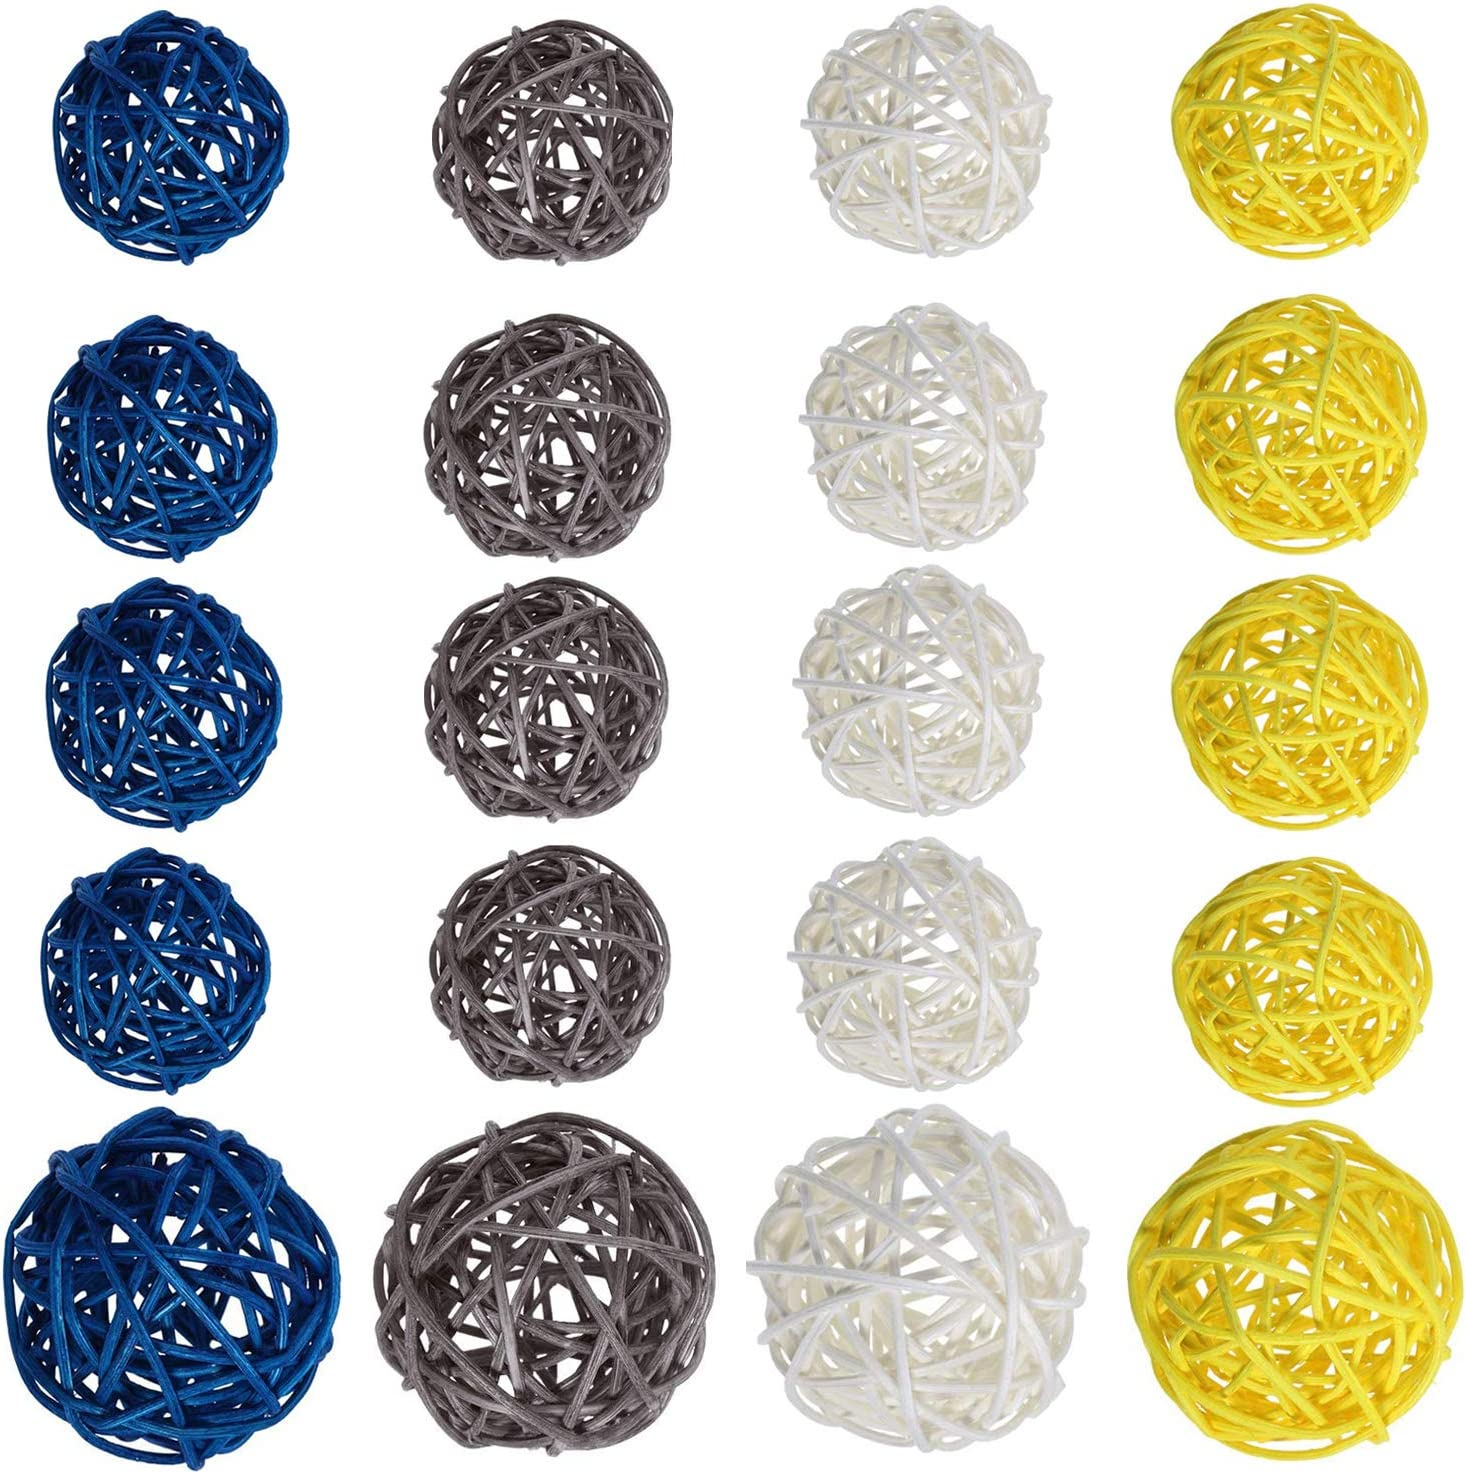 Jangostor 20 PCS Rattan Balls Wicker Ball Decorative Orbs Vase Fillers for Home Decor, Craft, Party, Wedding Decoration, Baby Shower, Aromatherapy Accessories, 3.2 in,2 in (Blue, Gray, White,Yellow)